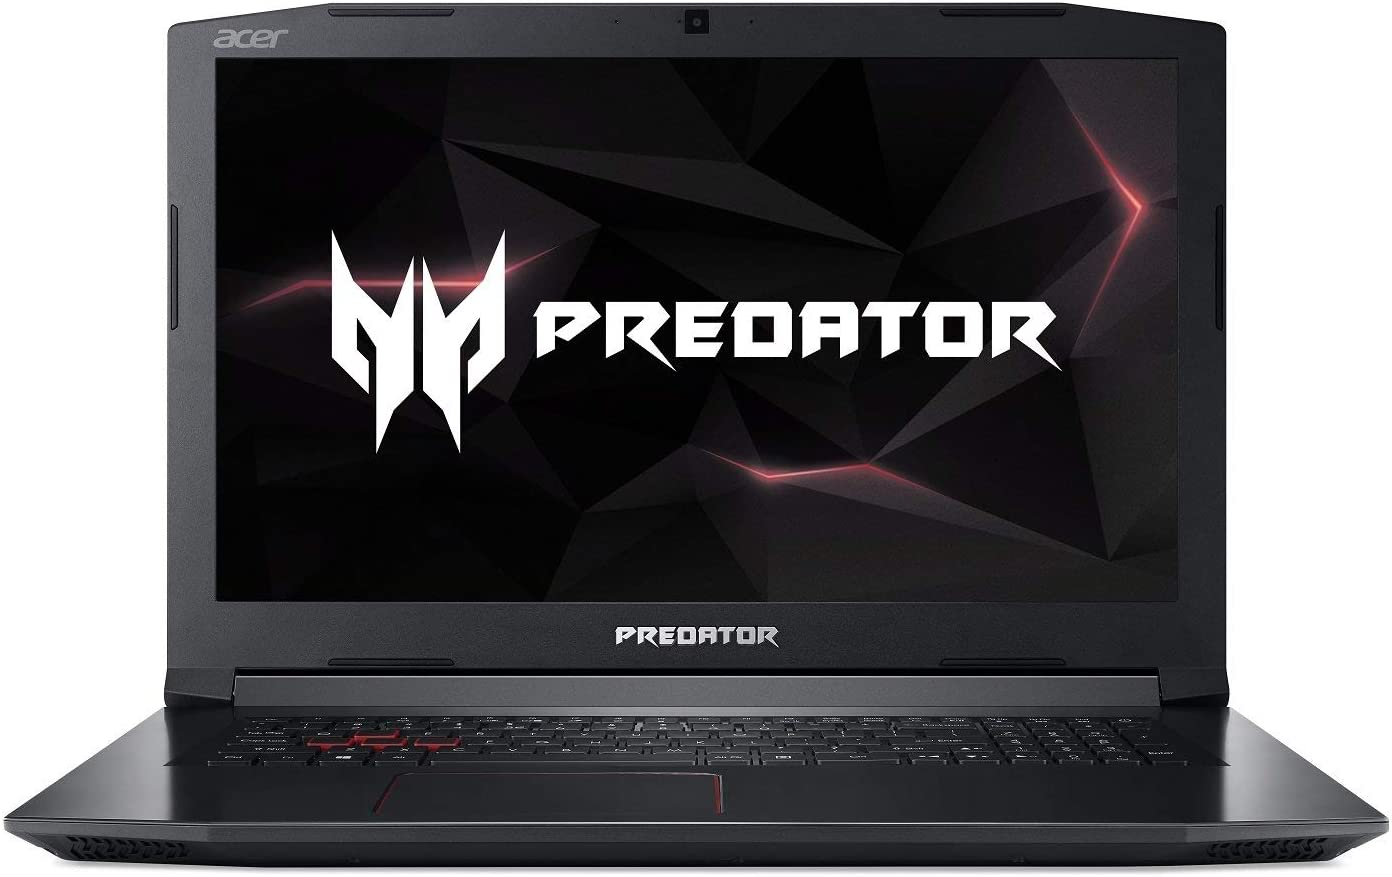 Acer Predator Helios 300 PH317-52-77A4 Gaming Laptop, Intel Core i7-8750H, GeForce GTX 1060 17.3in 144Hz Full HD, 16GB DDR4, 256GB PCIe NVMe SSD, 1TB HDD (Renewed)